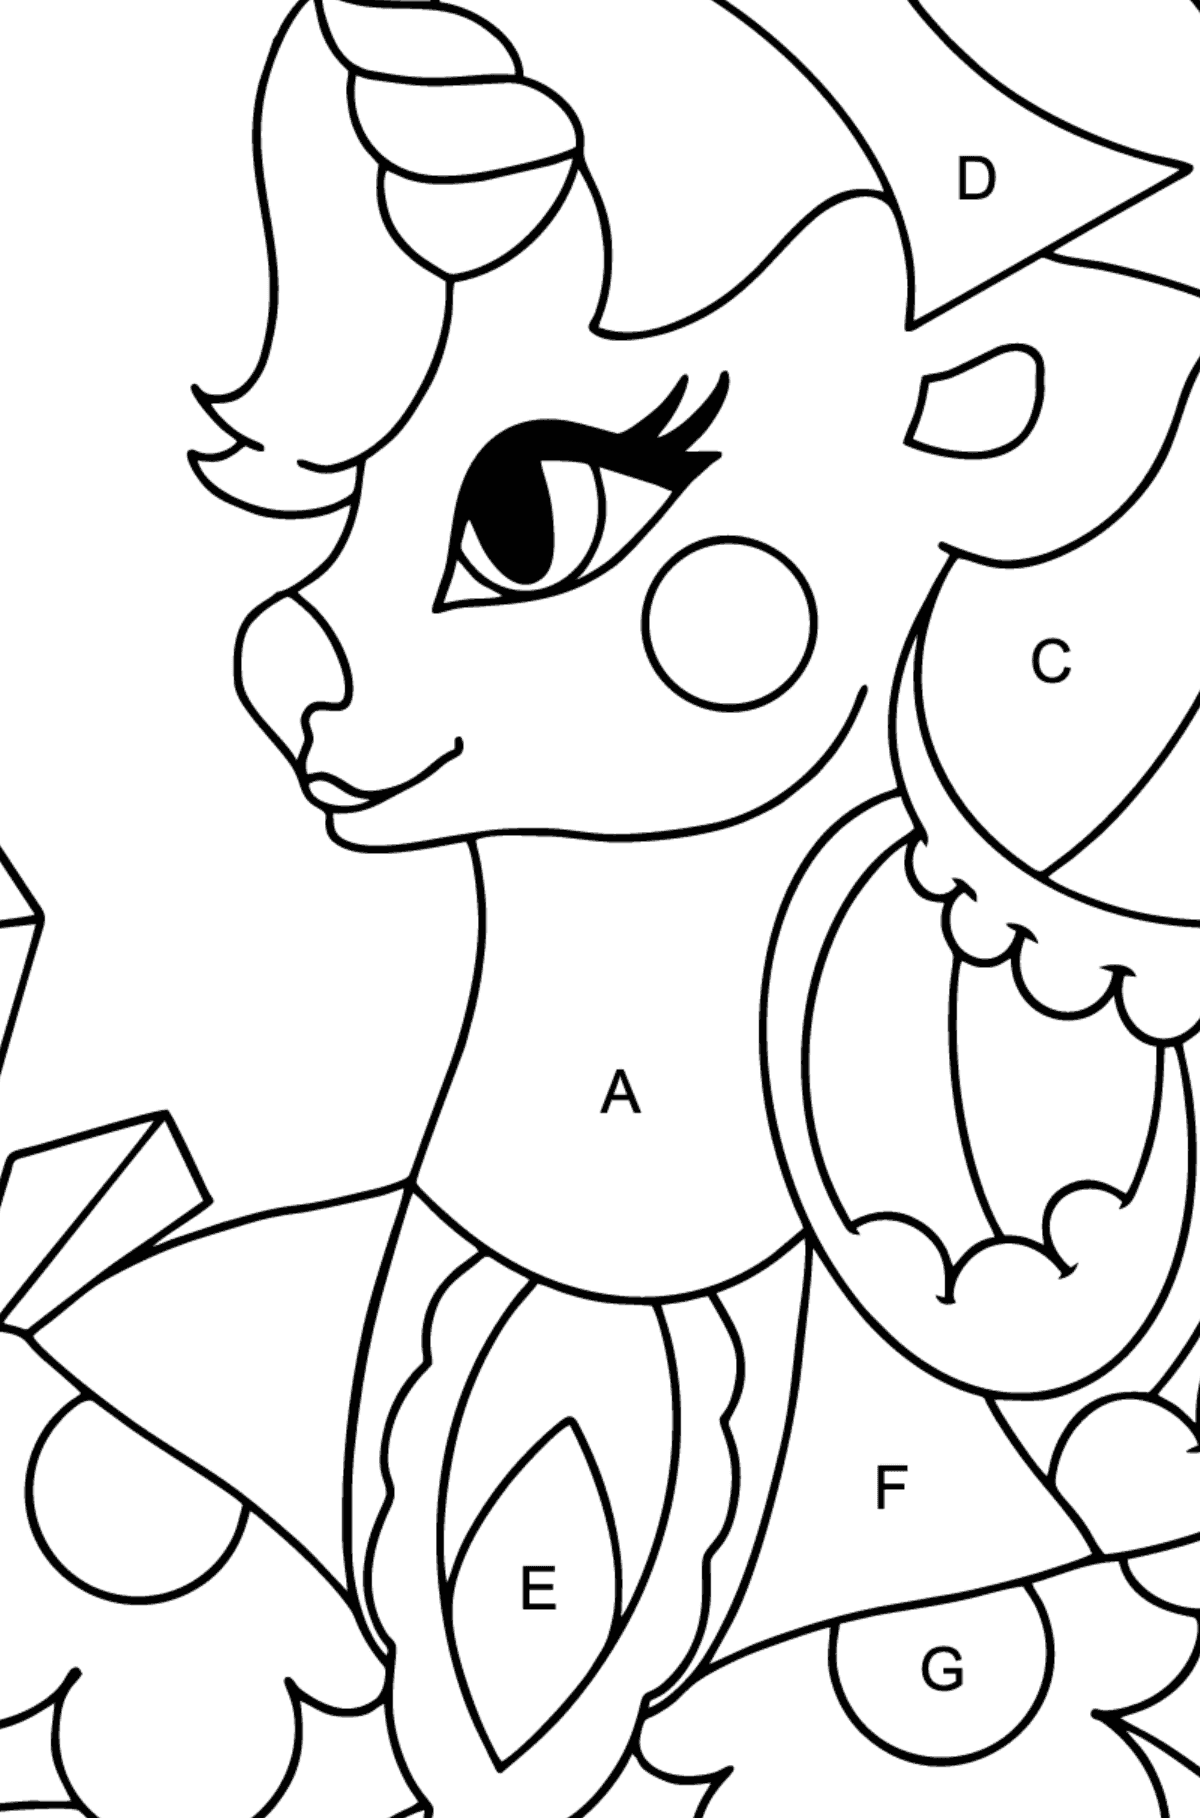 Simple Coloring Page - A Unicorn Queen for Kids  - Color by Letters